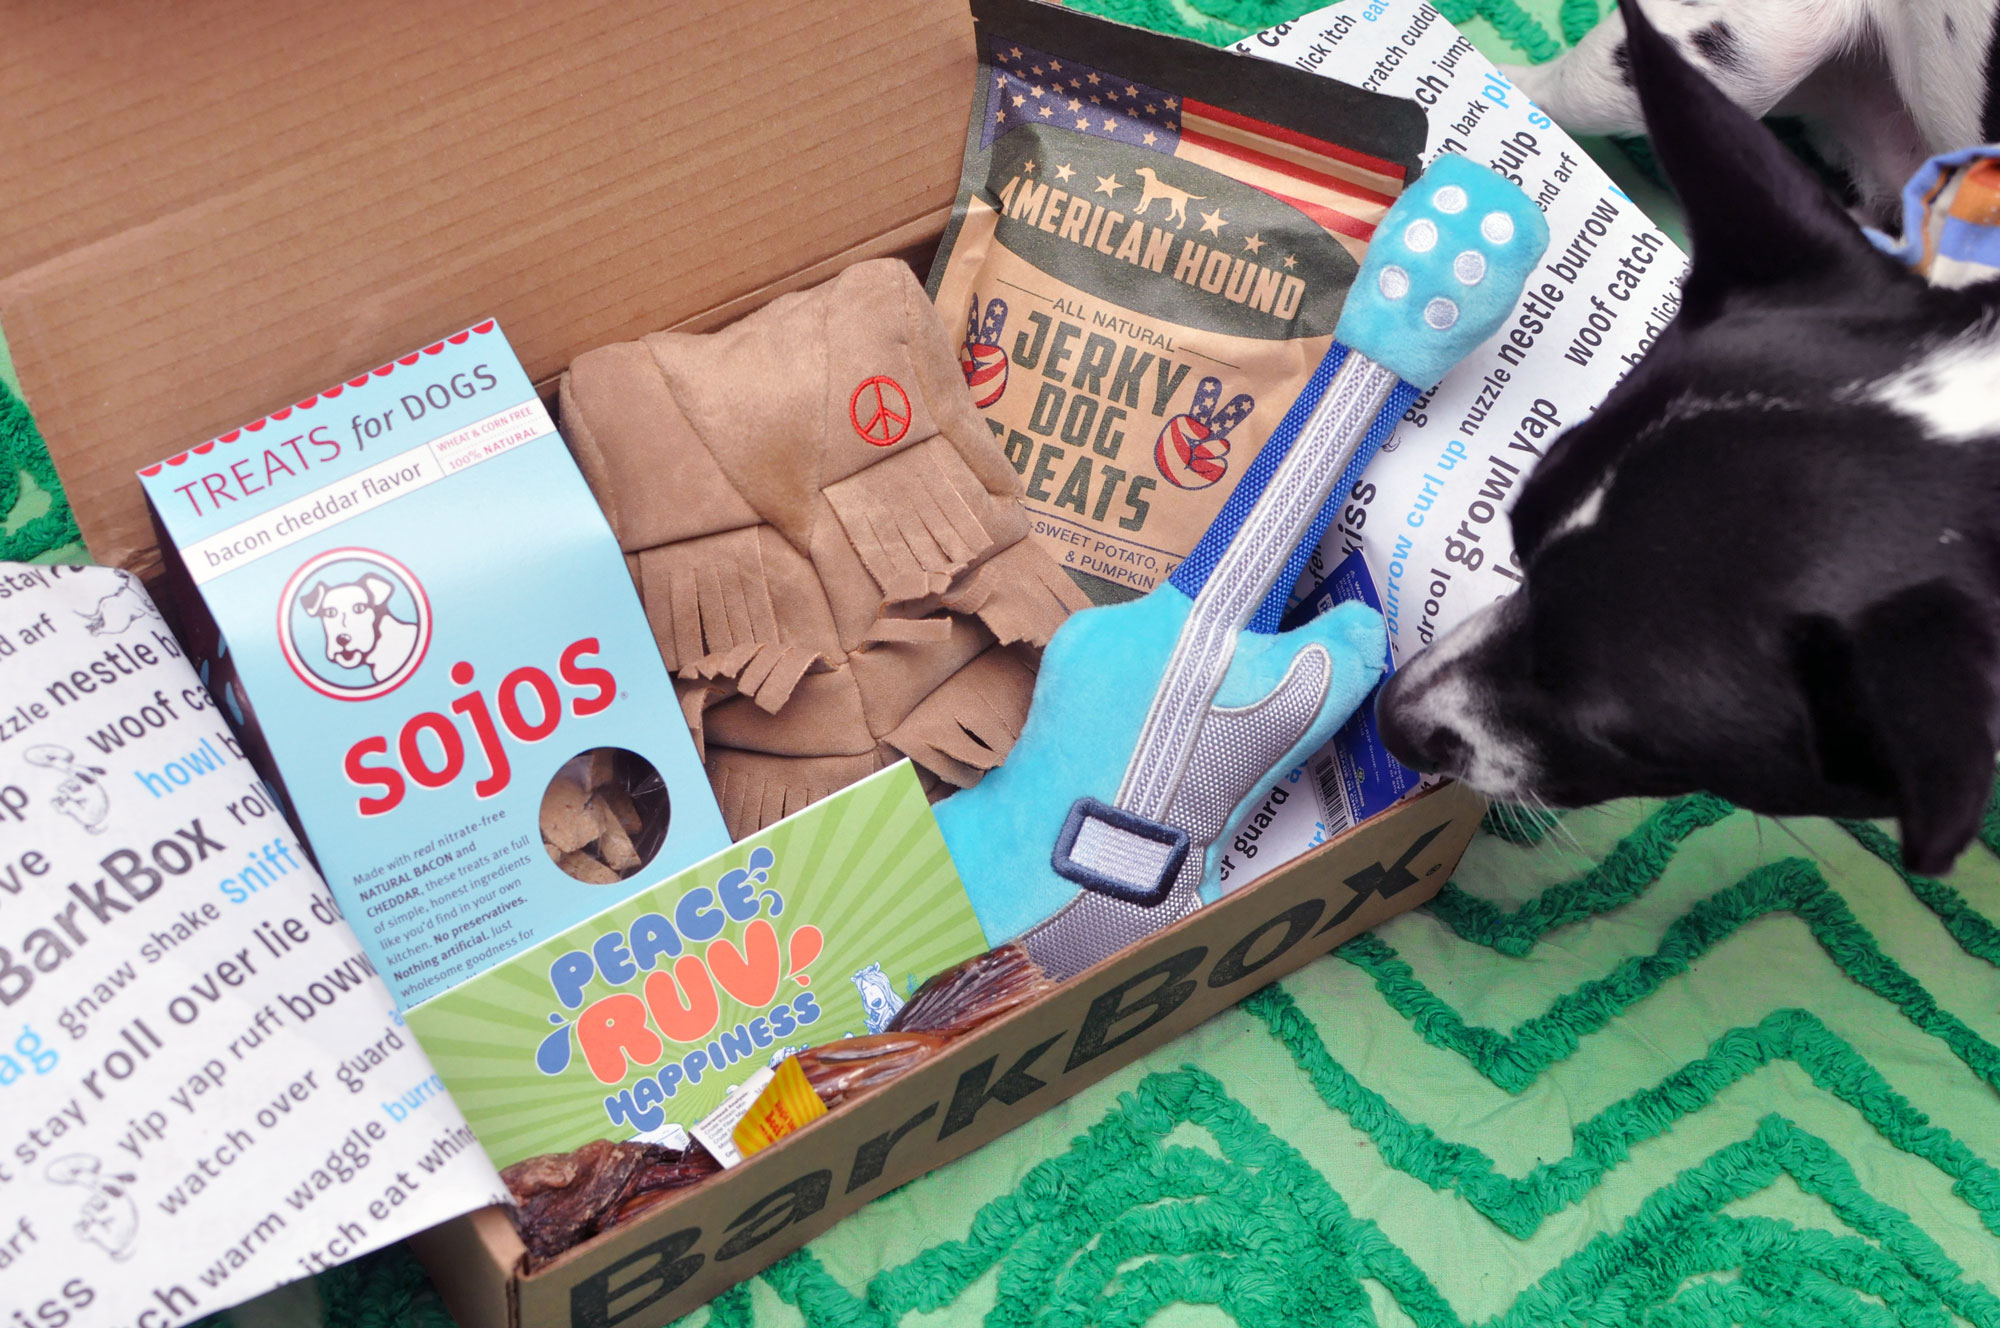 The Broke Dog: January 2016 BarkBox Unboxing. Add a free BarkBox to any new plan with code HENRYTHENUGGET!